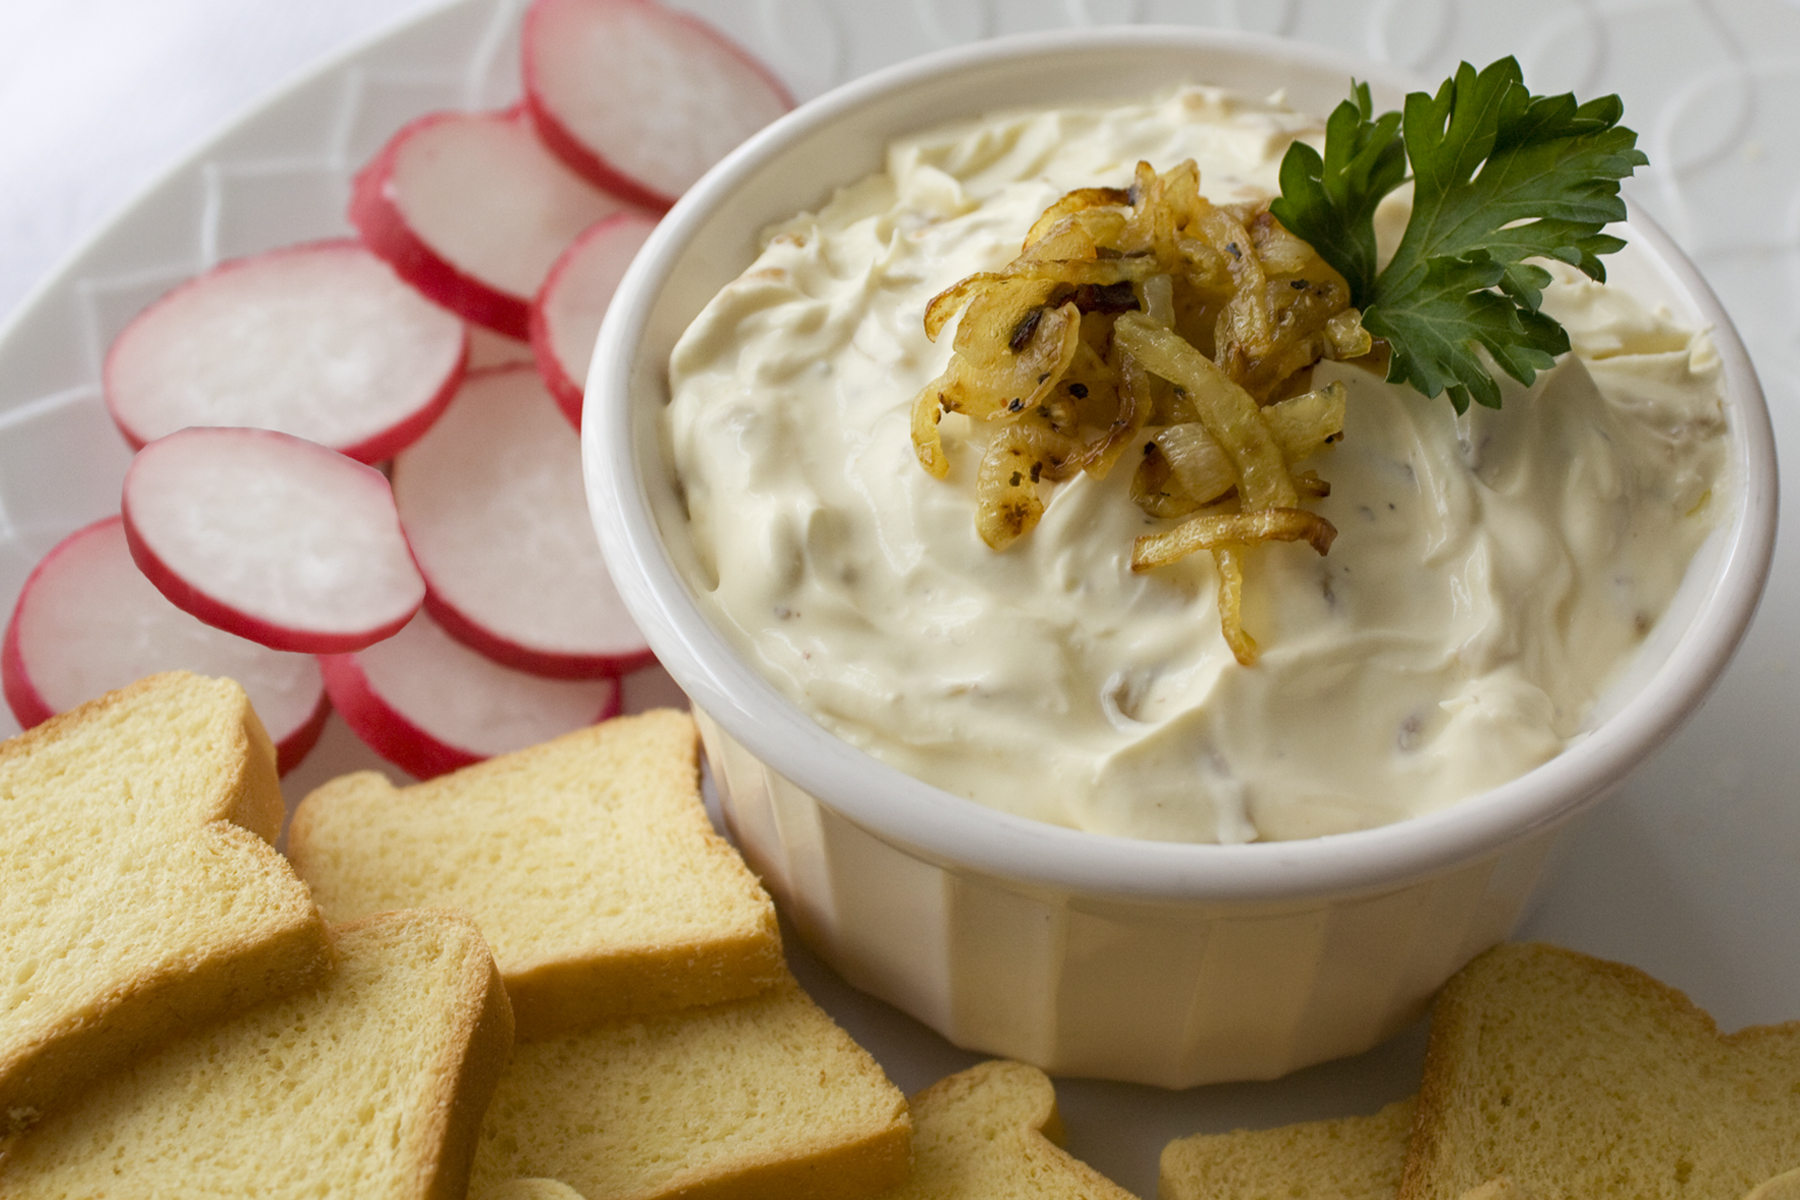 ... Course Appetizers Dips and Spreads Caramelized French Onion Dip